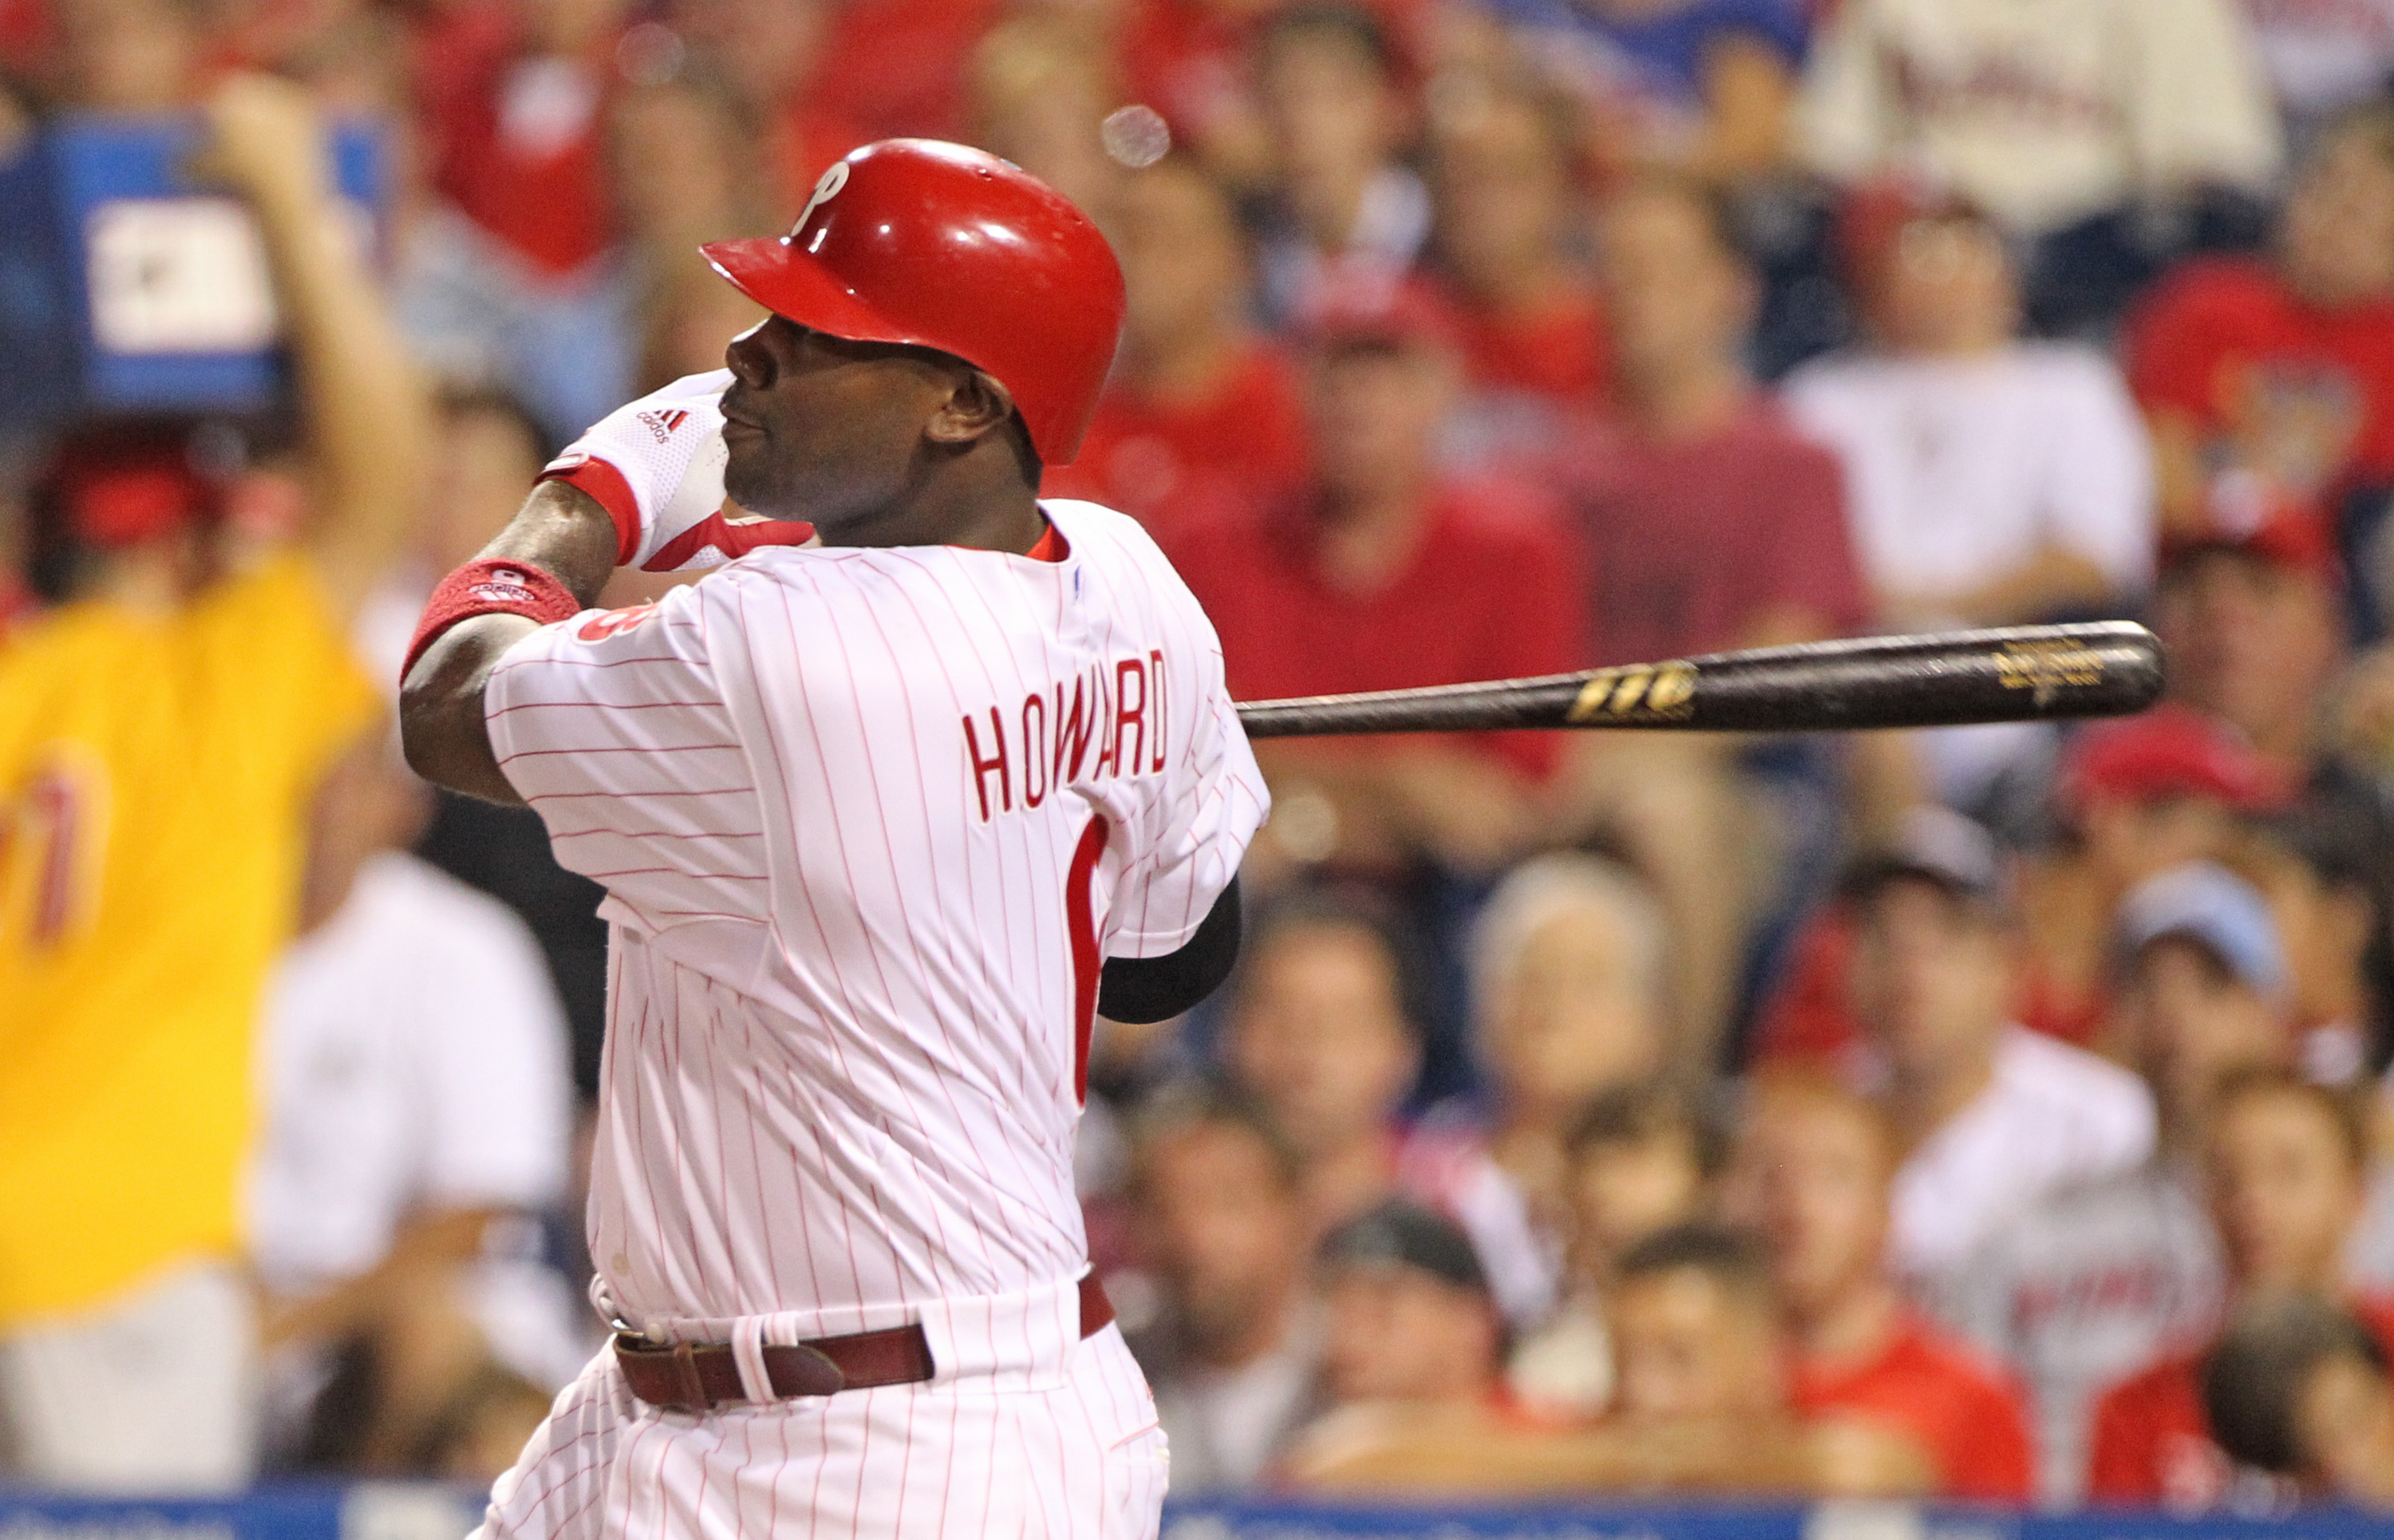 PHILADELPHIA - SEPTEMBER 25: First baseman Ryan Howard #6 of the Philadelphia Phillies hits a first inning two-run home run during a game against the New York Mets at Citizens Bank Park on September 25, 2010 in Philadelphia, Pennsylvania. (Photo by Hunter